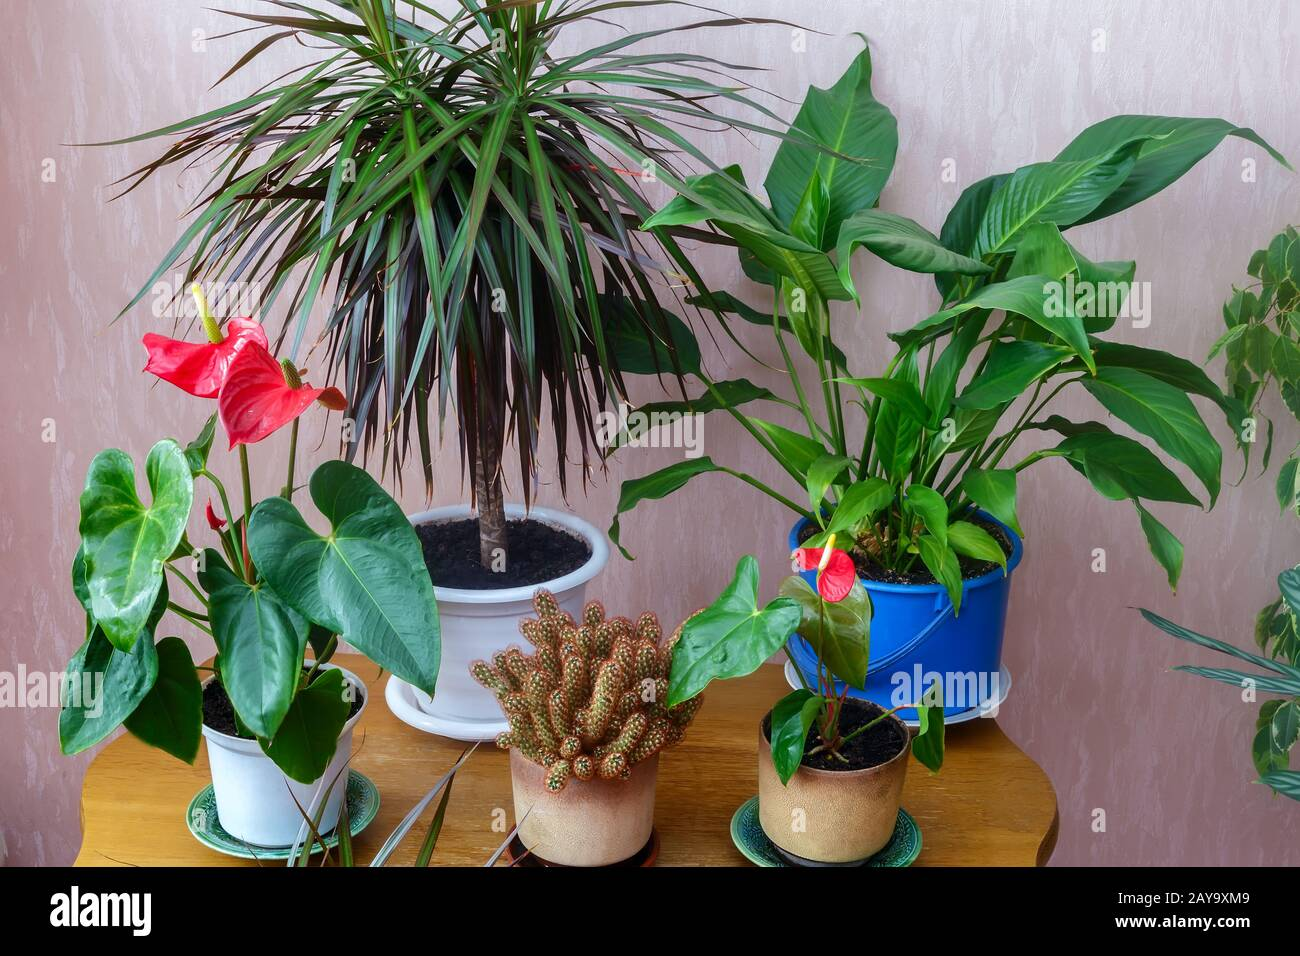 A variety of potted plants in the house. Stock Photo